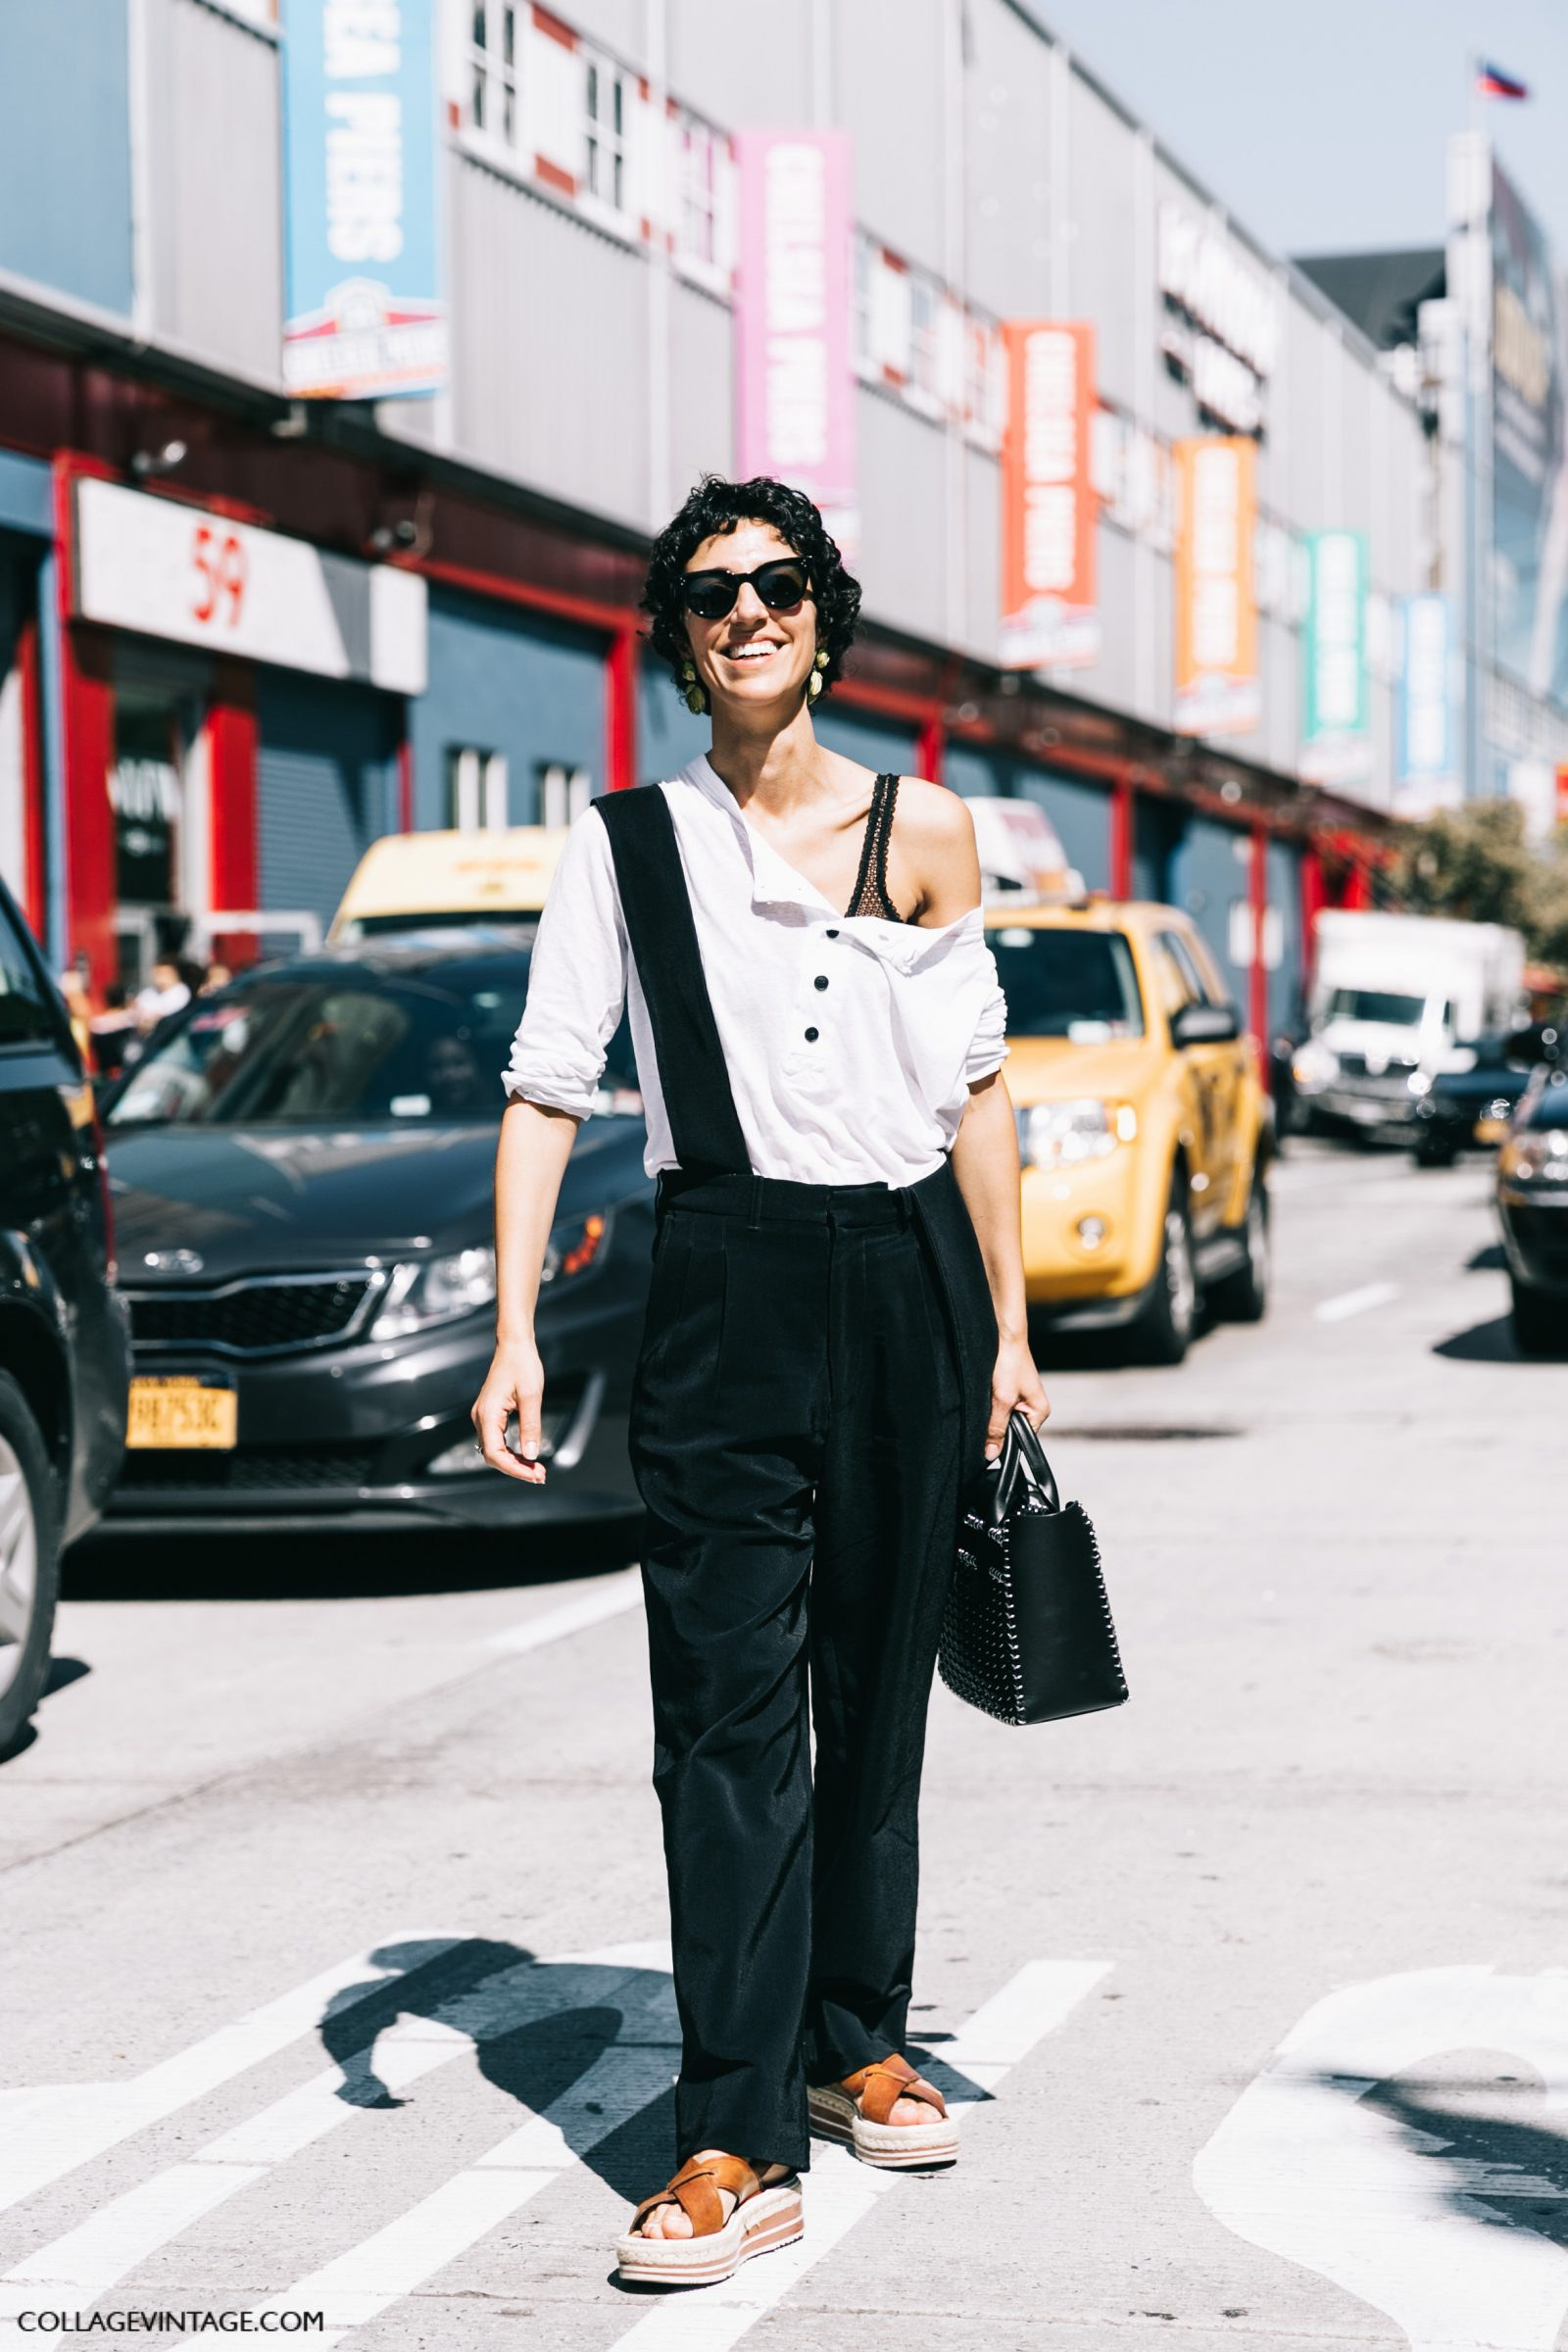 nyfw-new_york_fashion_week_ss17-street_style-outfits-collage_vintage-vintage-del_pozo-michael_kors-hugo_boss-123